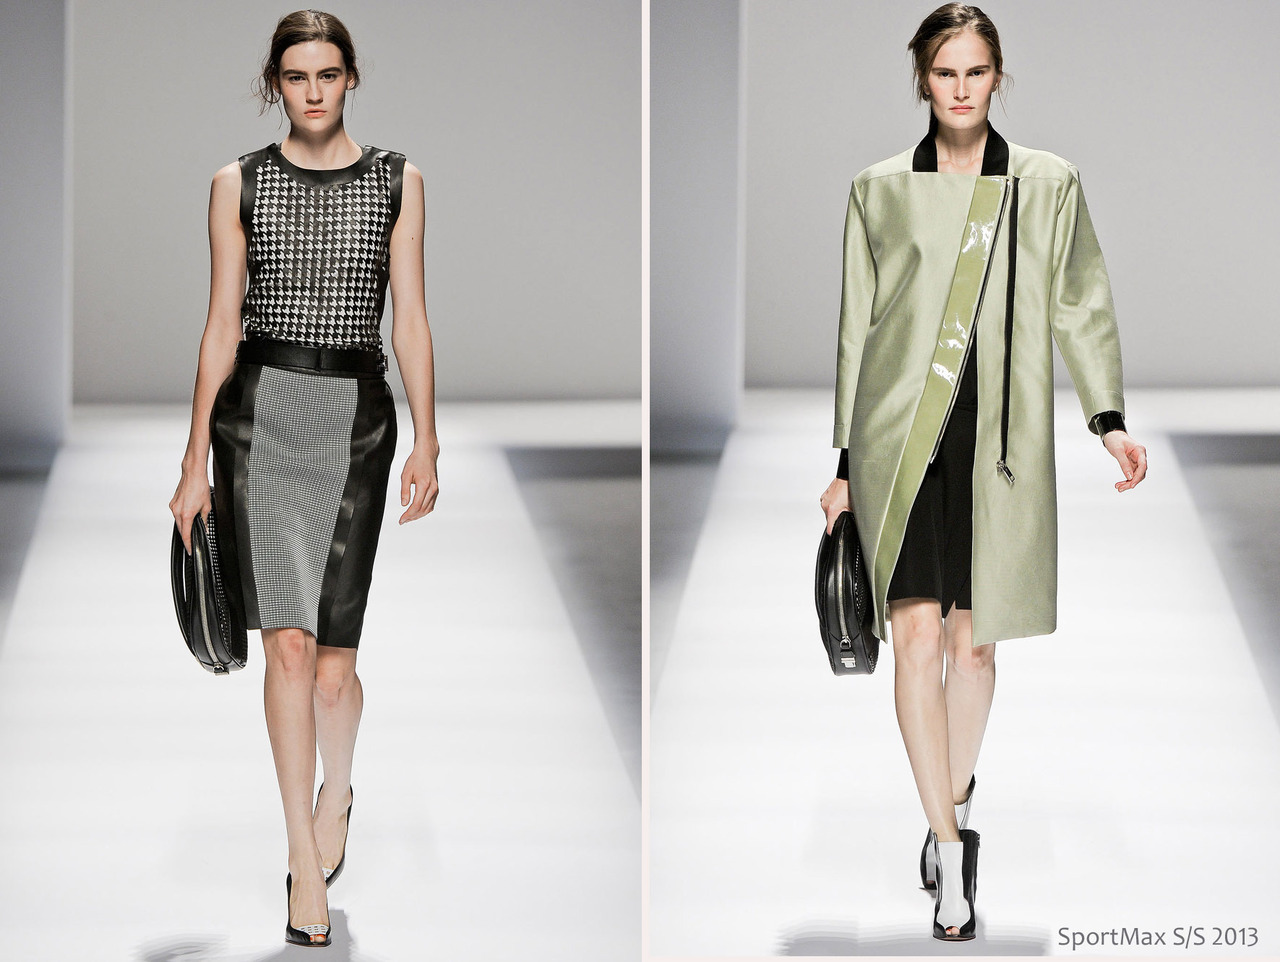 Sportmax Spring/Summer 2013 #MFW | Looks for the sleek #VoguishCareerist